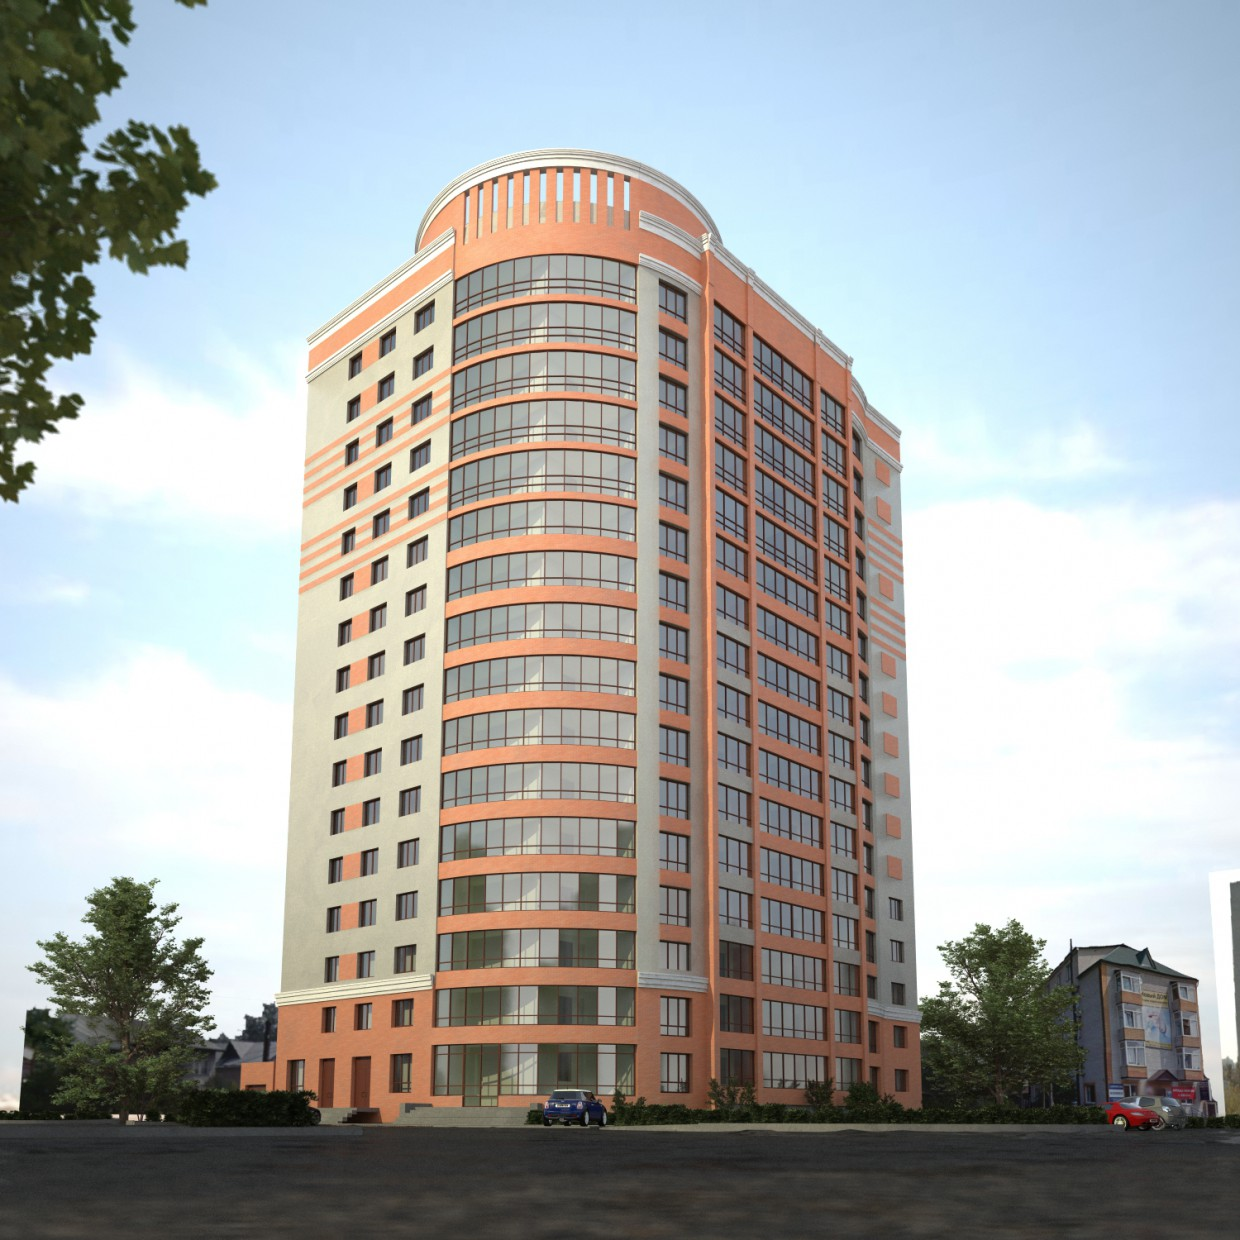 Building under construction in Barnaul in Cinema 4d vray 2.0 image